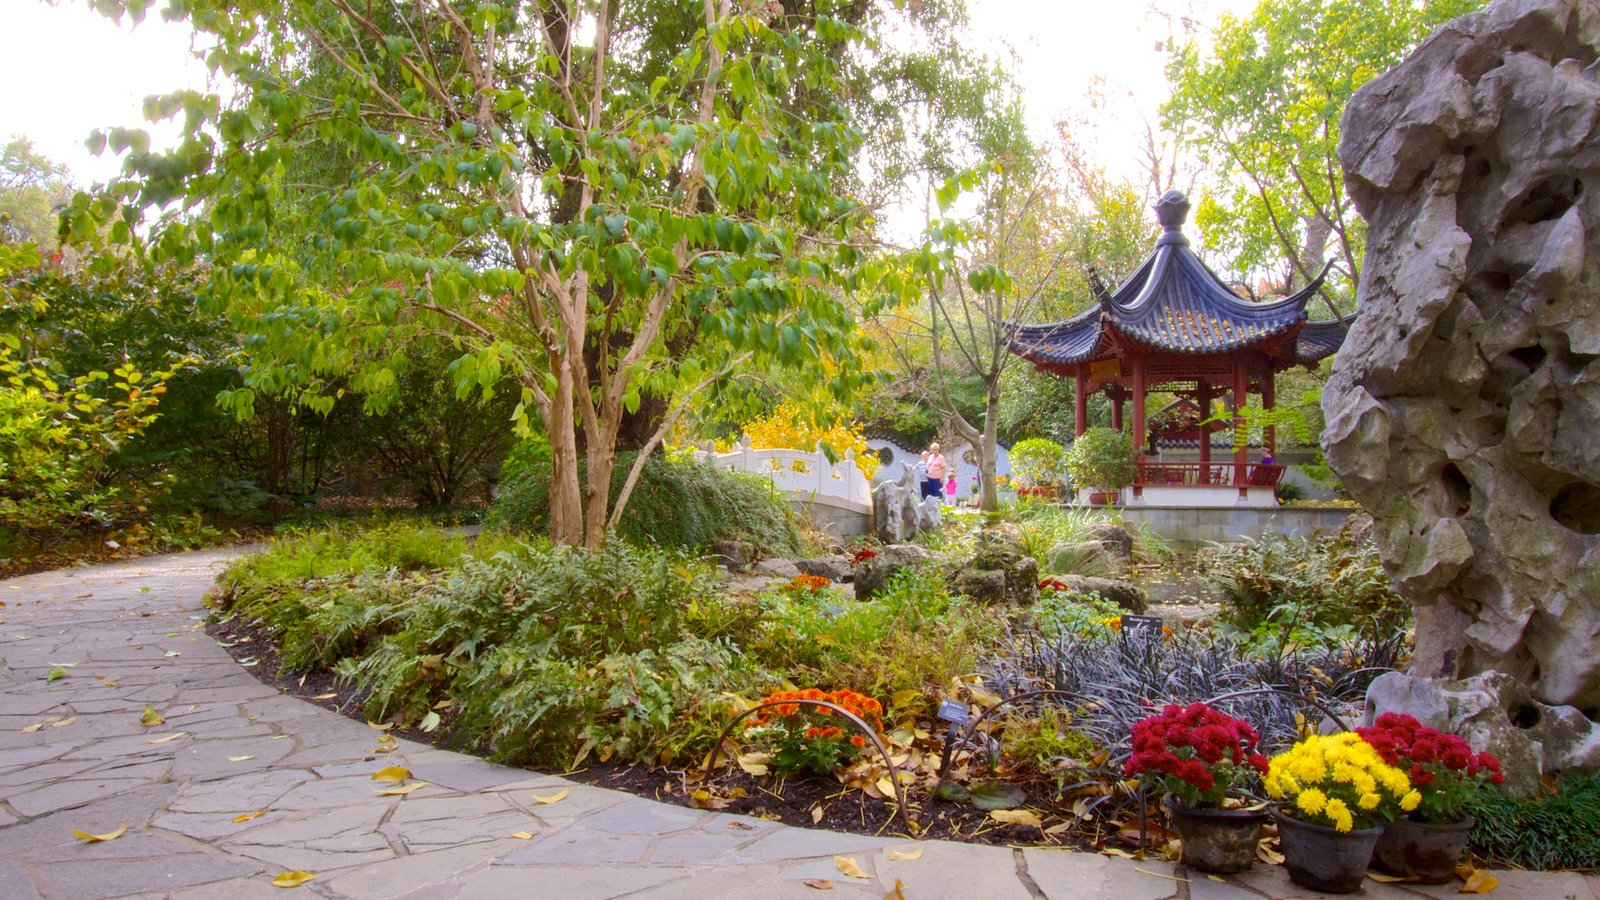 Missouri Botanical Gardens and Arboretum featuring flowers and a garden